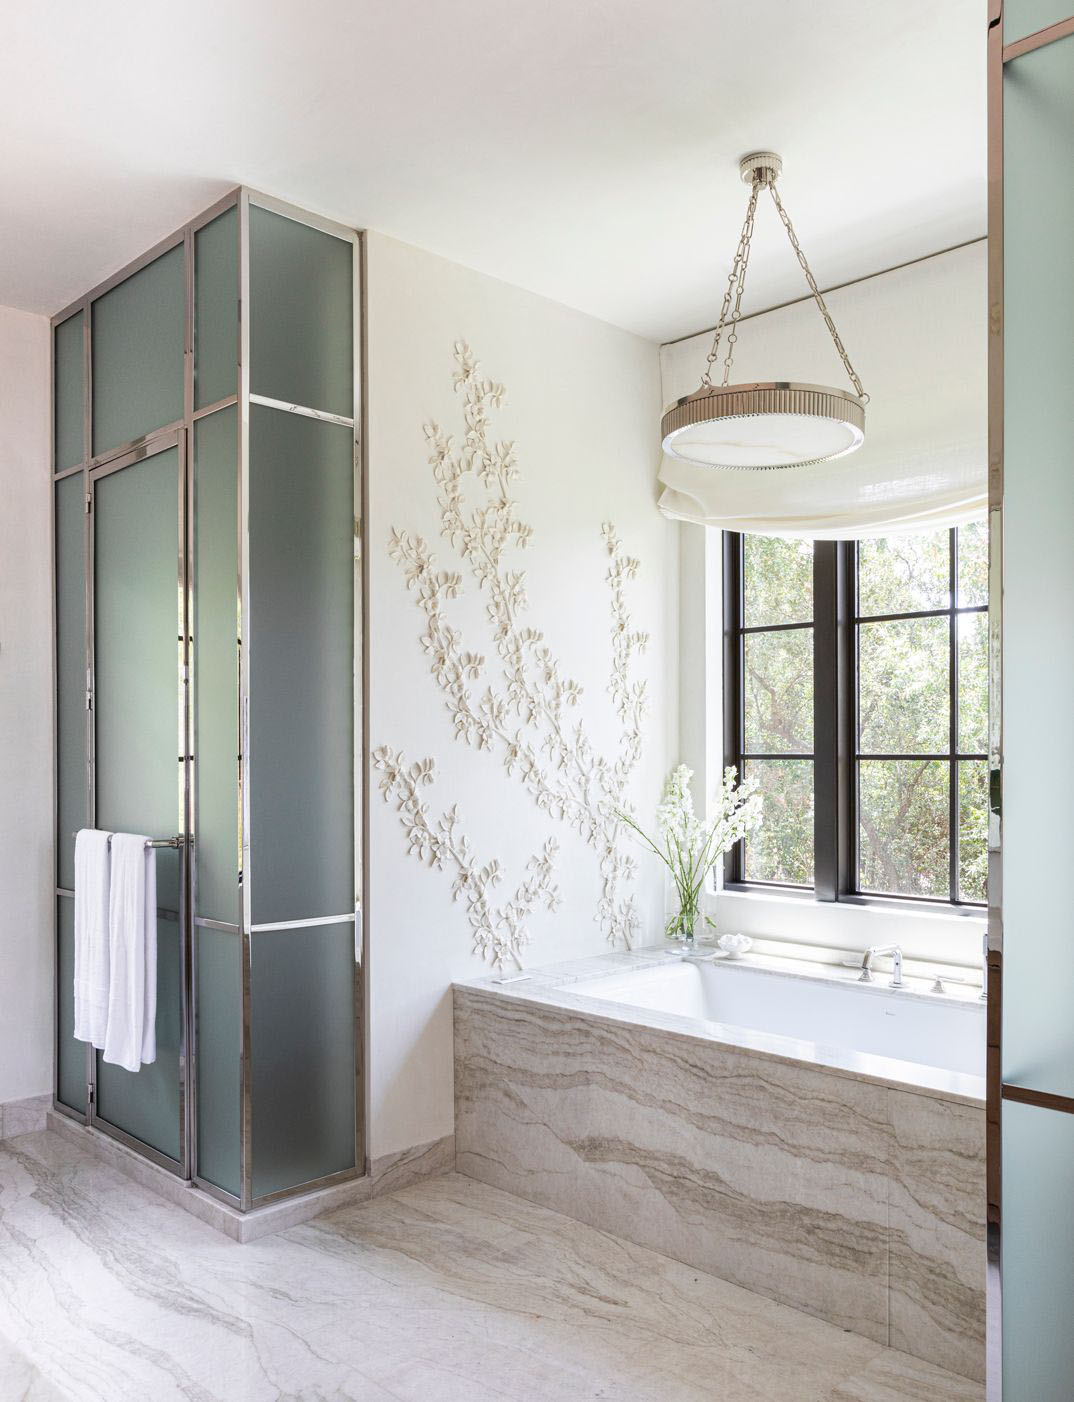 Houston home tour full of warm textures by Marie Flanigan, modern Houston house, luxury bathroom with plaster flowers on Thou Swell #bathroom #luxurybathroom #designerbathroom #bathroomdesign #bathroomdecor #homedesign